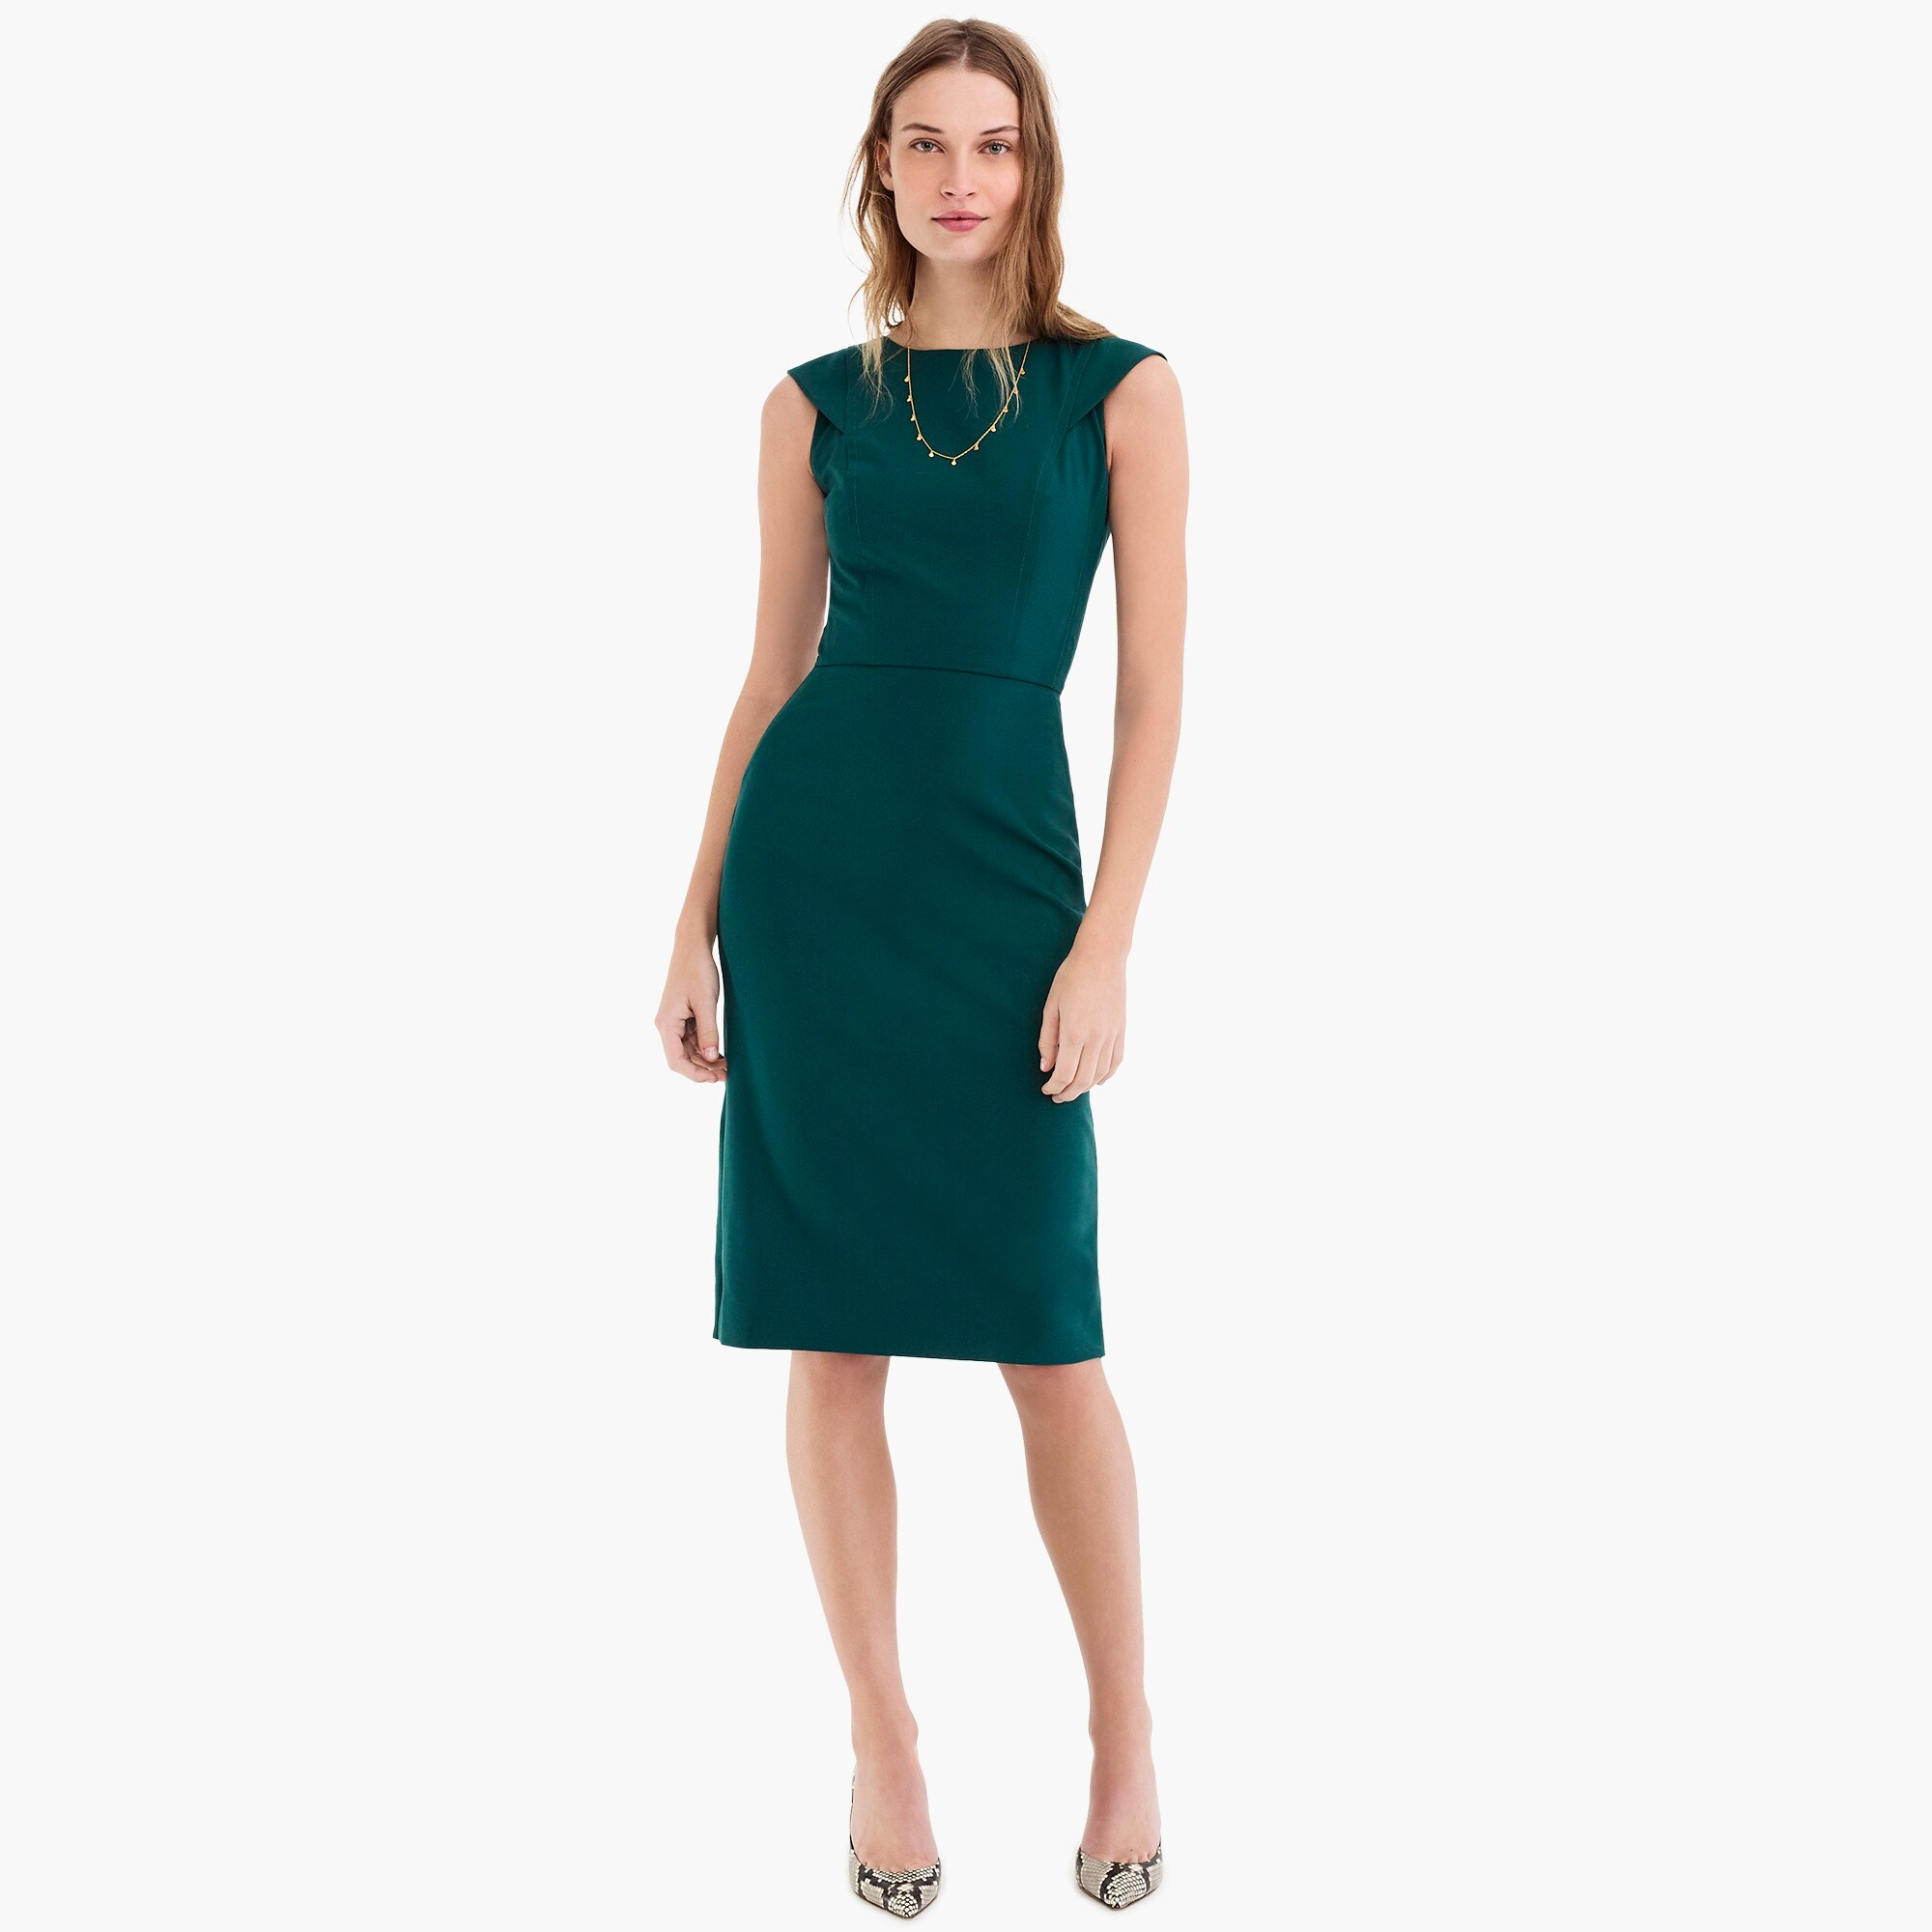 Cap-sleeve sheath dress in two-way stretch wool